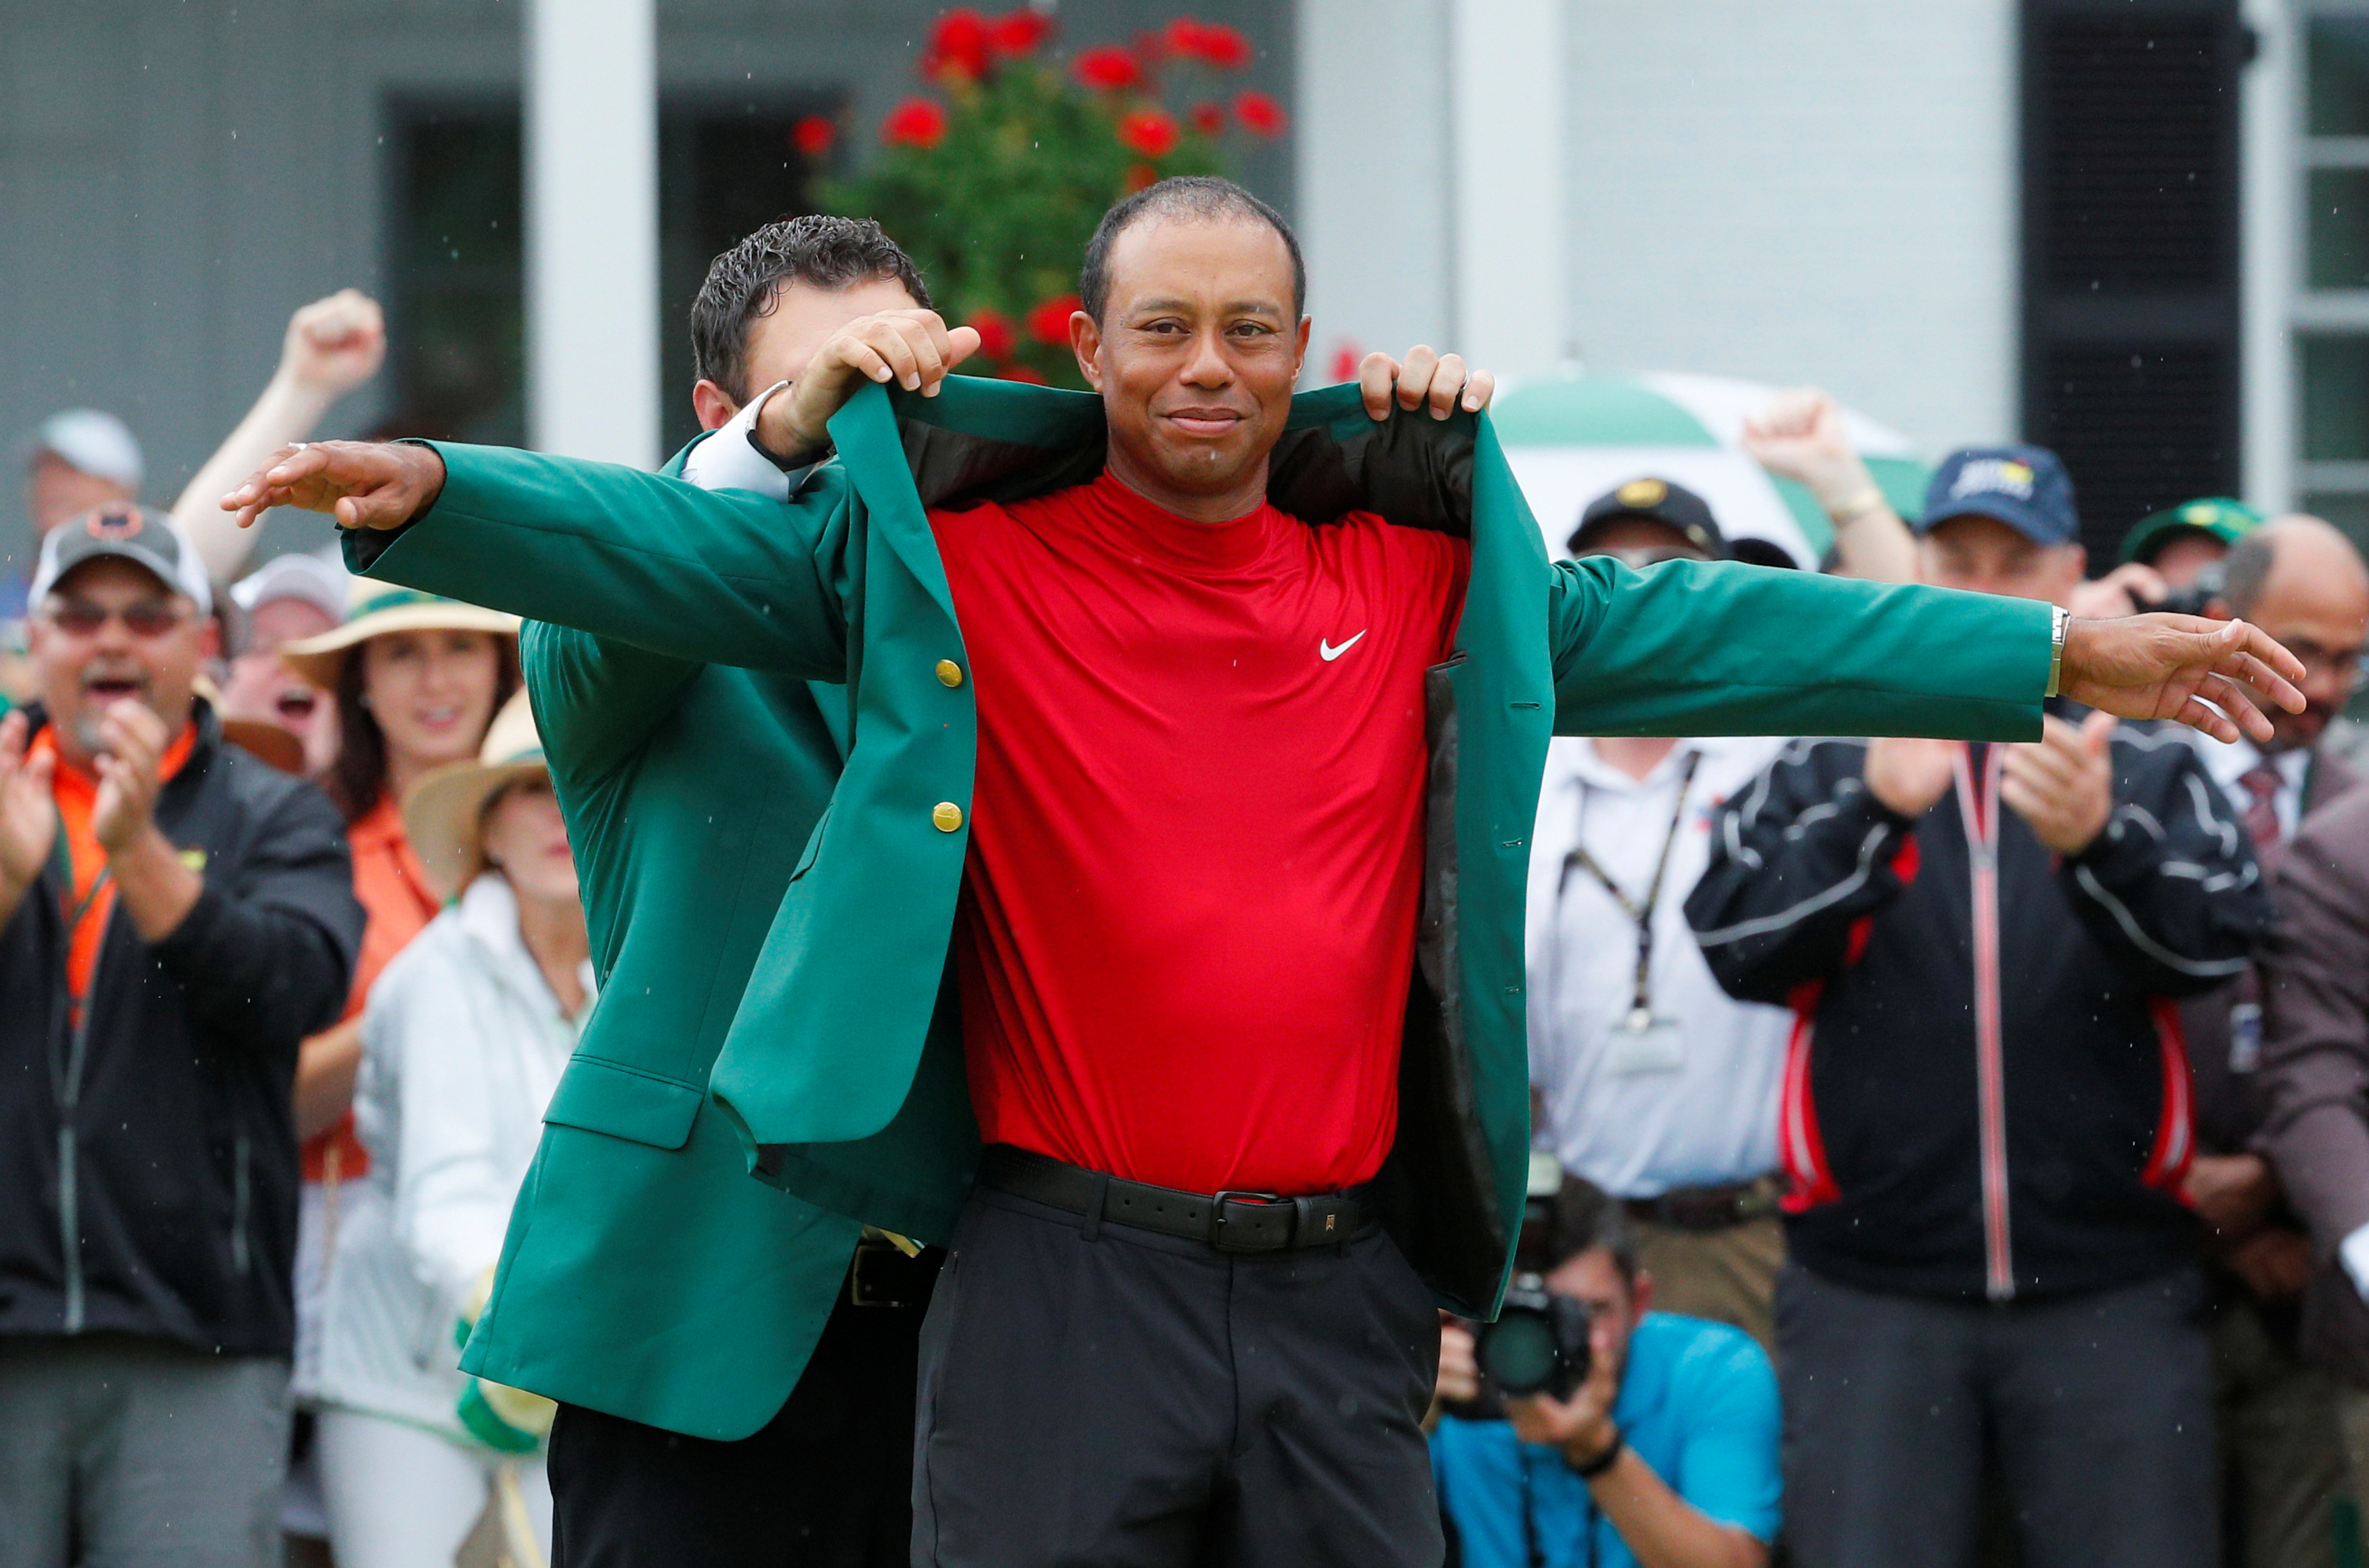 Golf - Masters - Augusta National Golf Club - Augusta, Georgia, U.S. - April 14, 2019 - Patrick Reed places the green jacket on Tiger Woods of the U.S. after Woods won the 2019 Masters. REUTERS/Brian Snyder